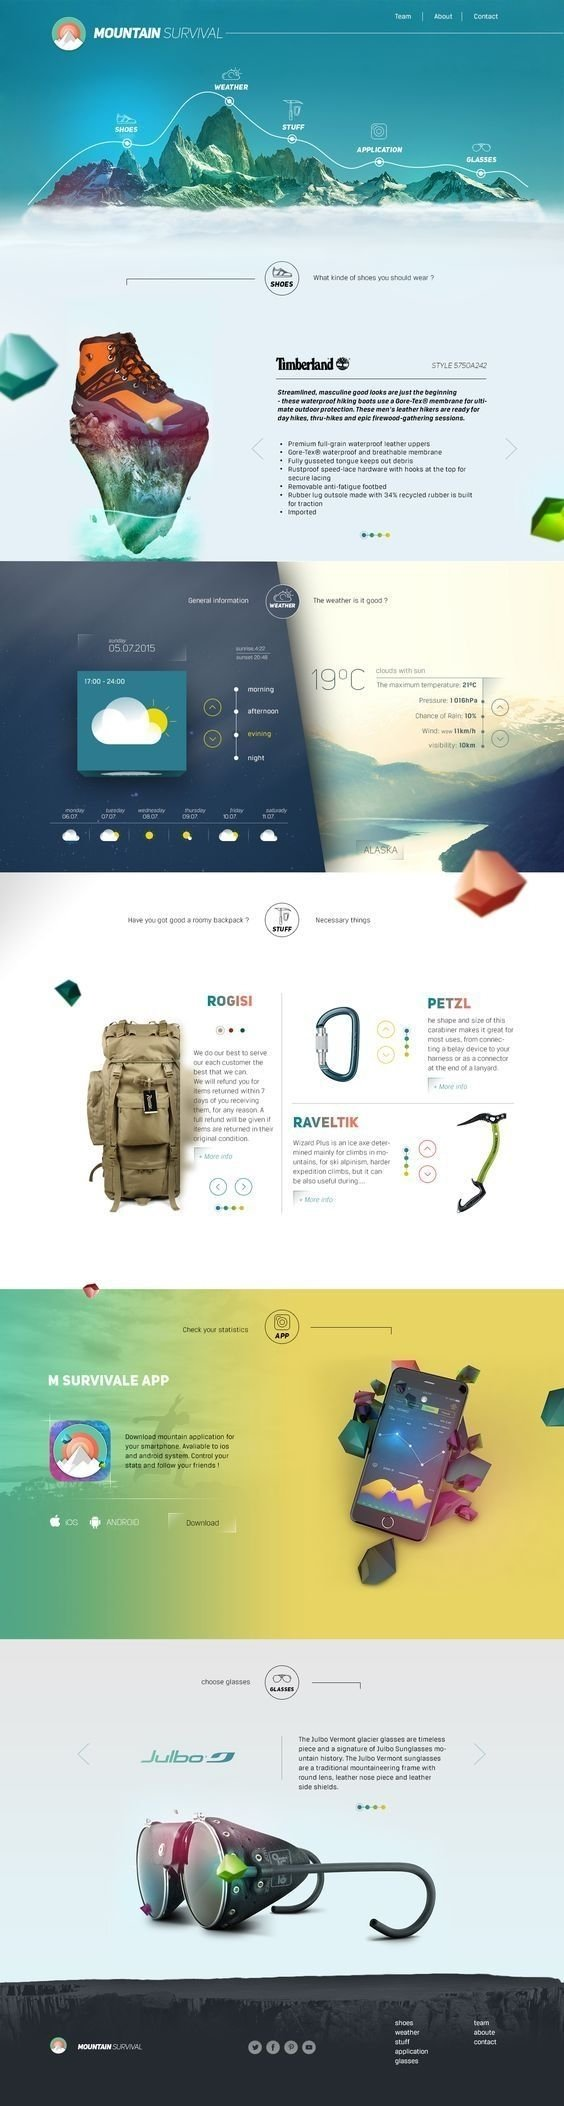 10 Most Recommended Good Ideas For A Website 6065 best graphic web design images on pinterest website layout 2020